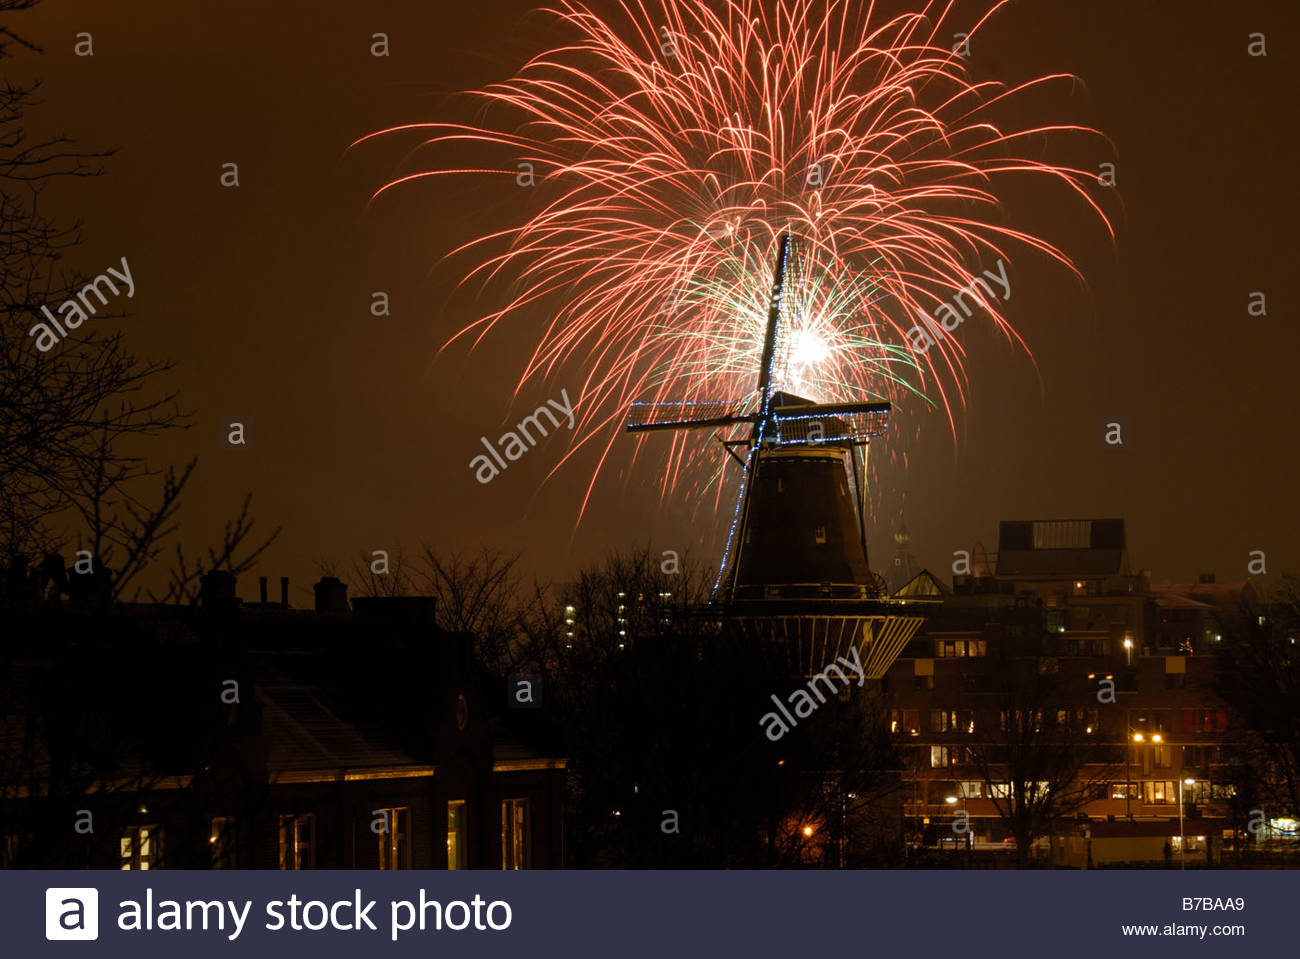 amsterdam-the-netherlands-new-years-eve-fireworks-explode-around-the-B7BAA9.jpg